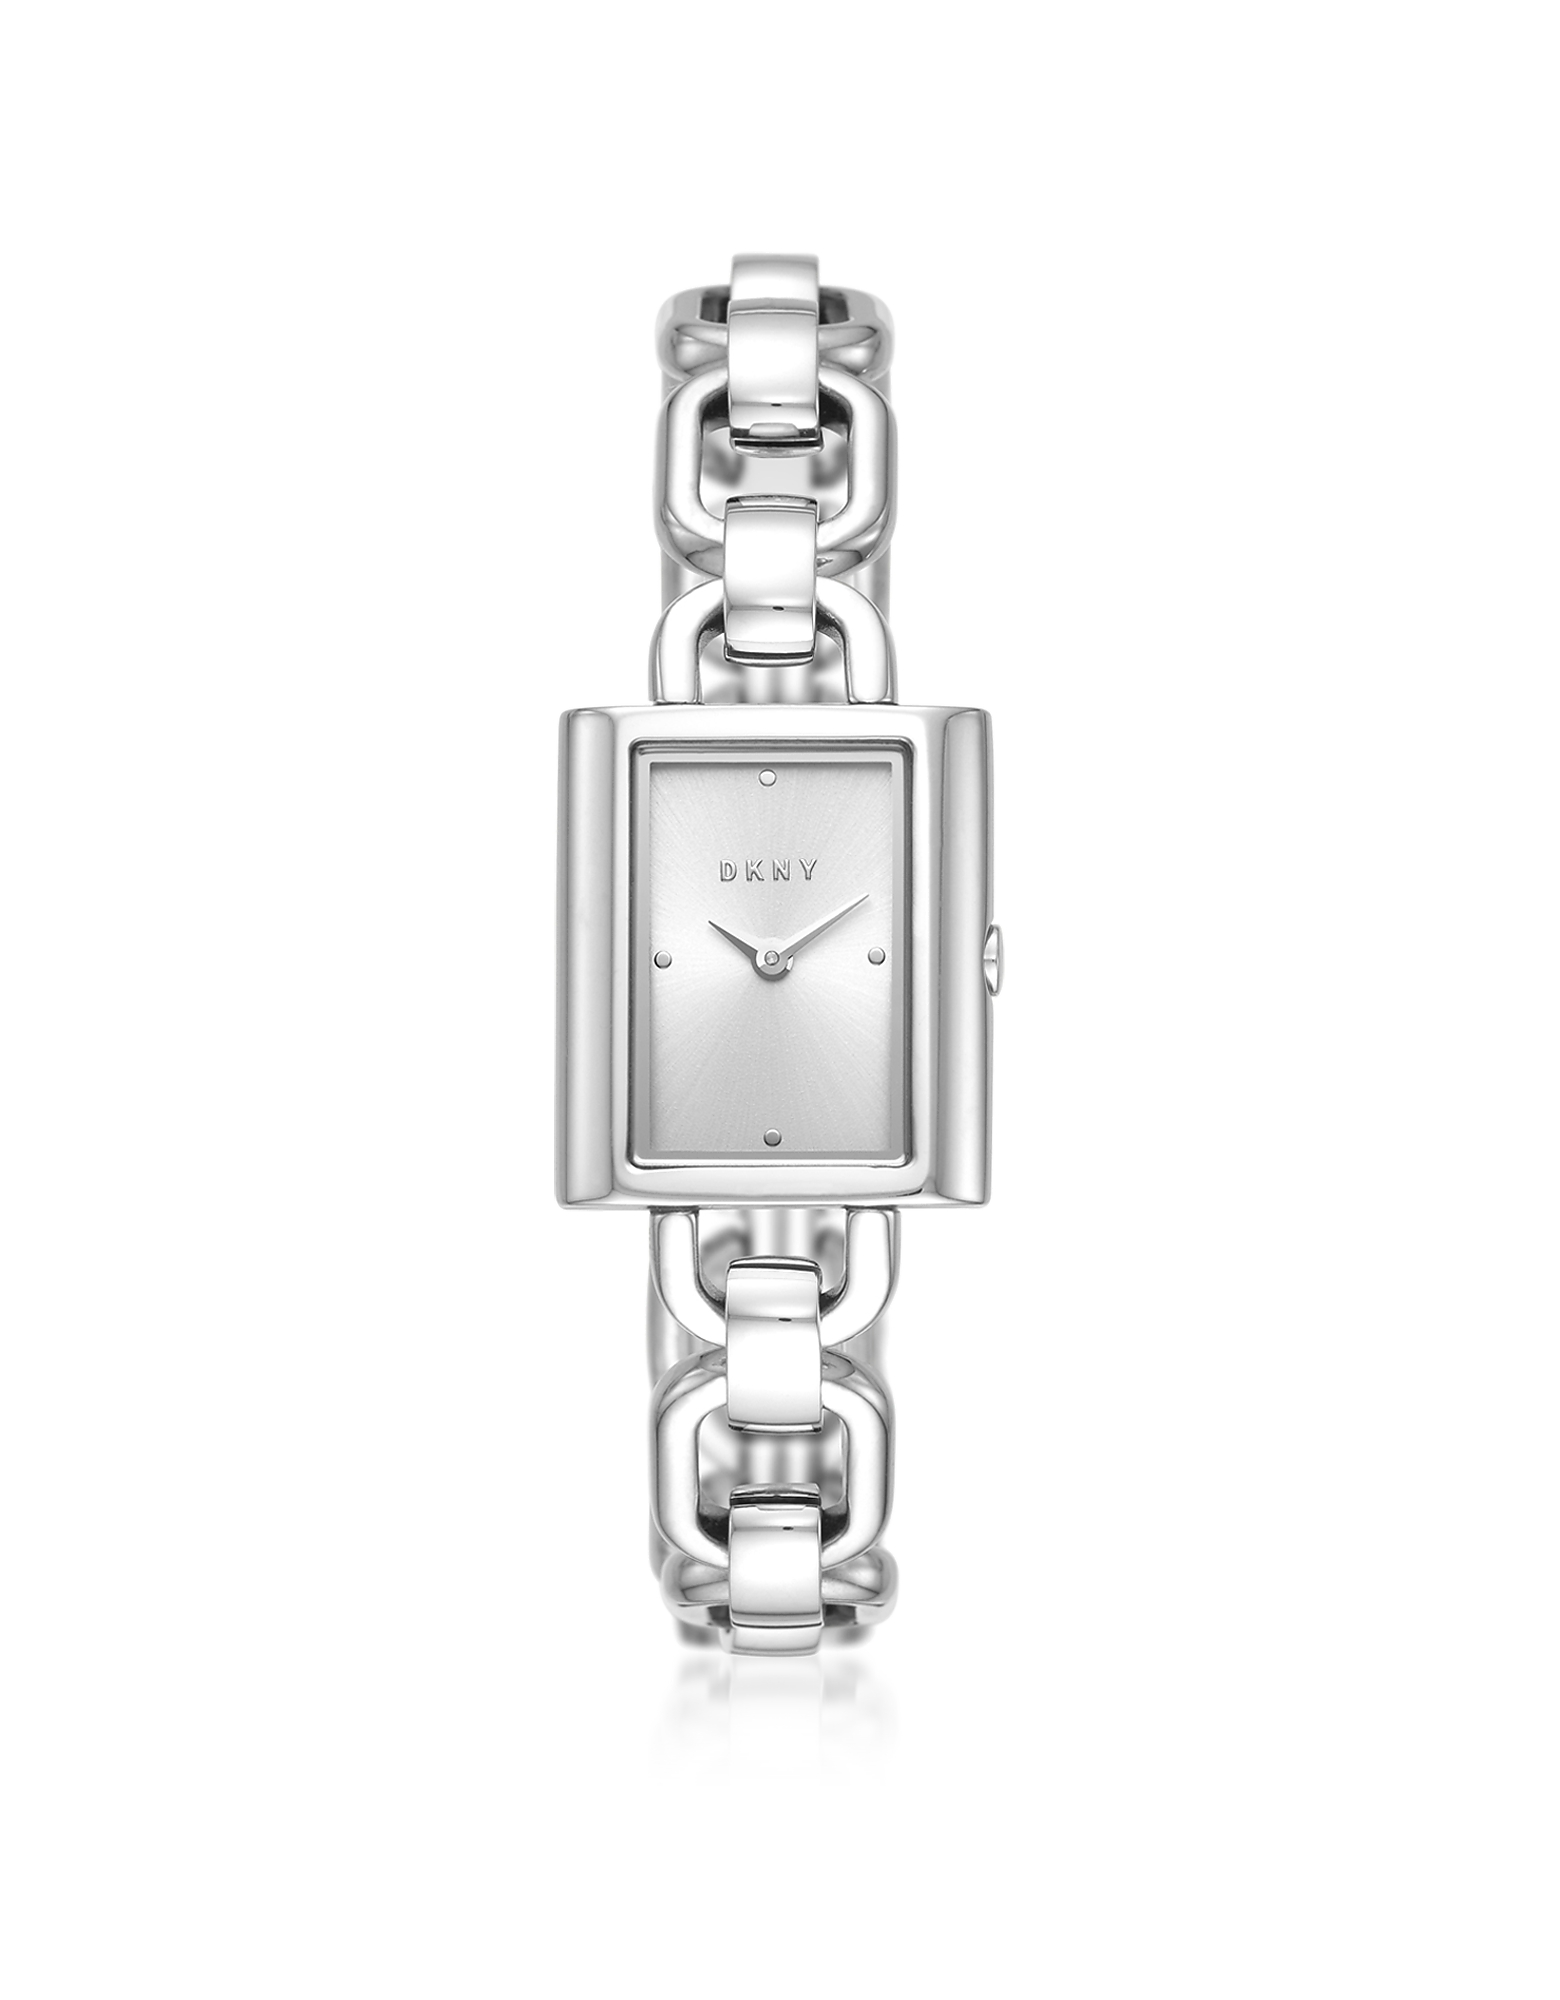 Uptown Stainless Steel Chain Watch